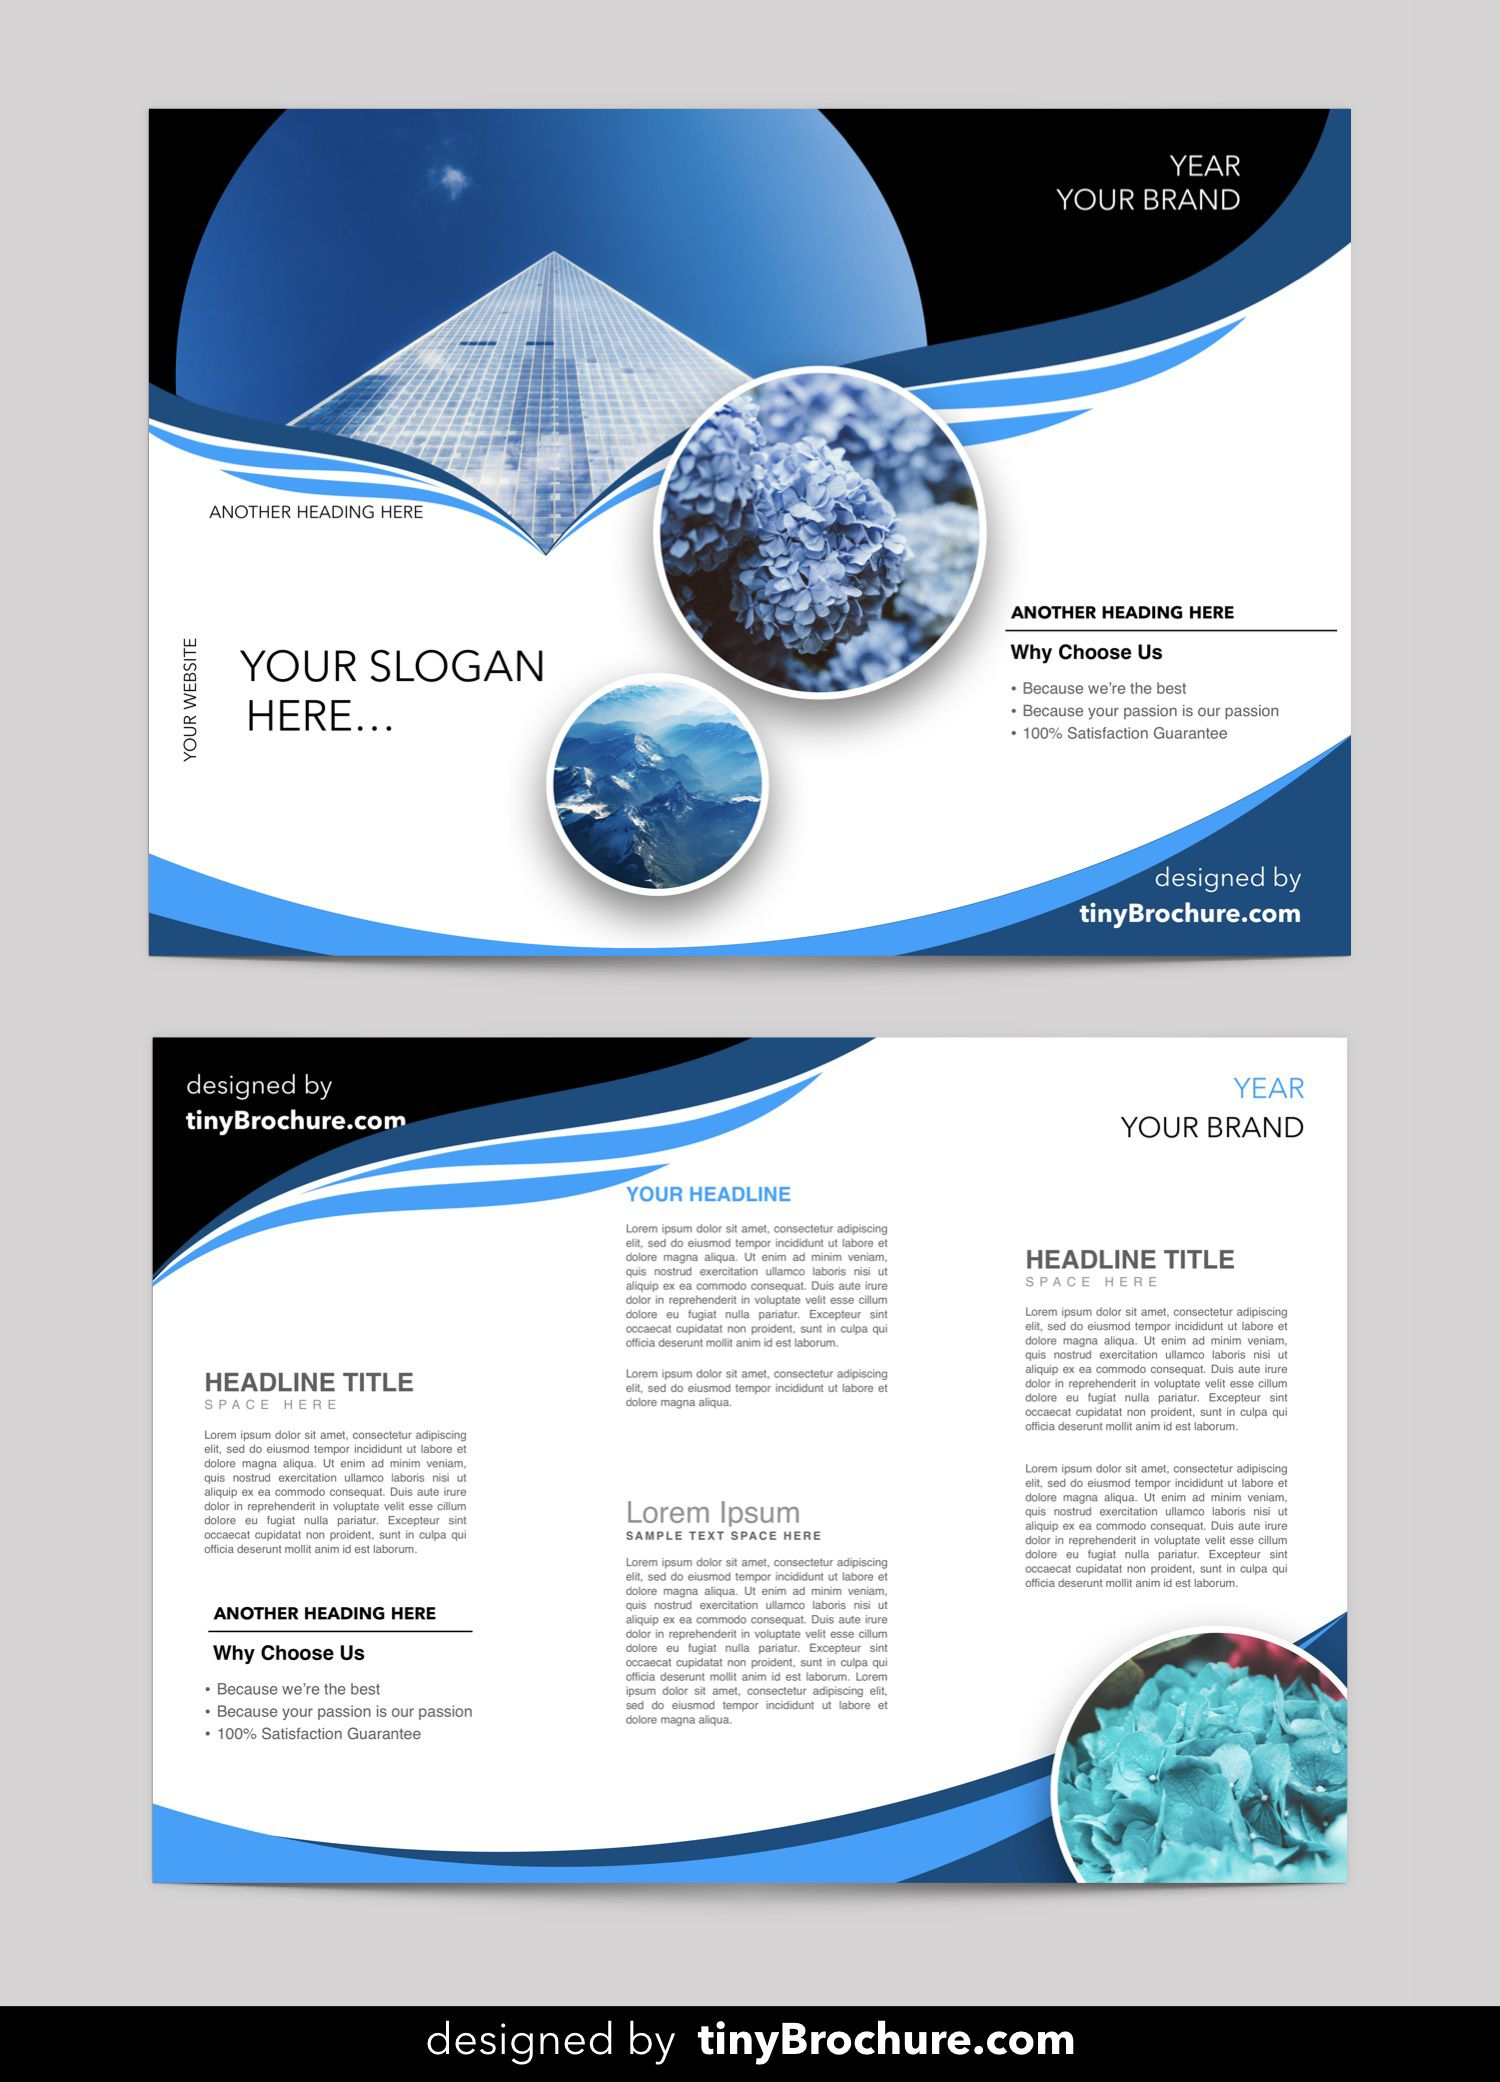 004 Rare Free Download Flyer Template High Definition  Photoshop For Microsoft Word Downloadable PublisherFull